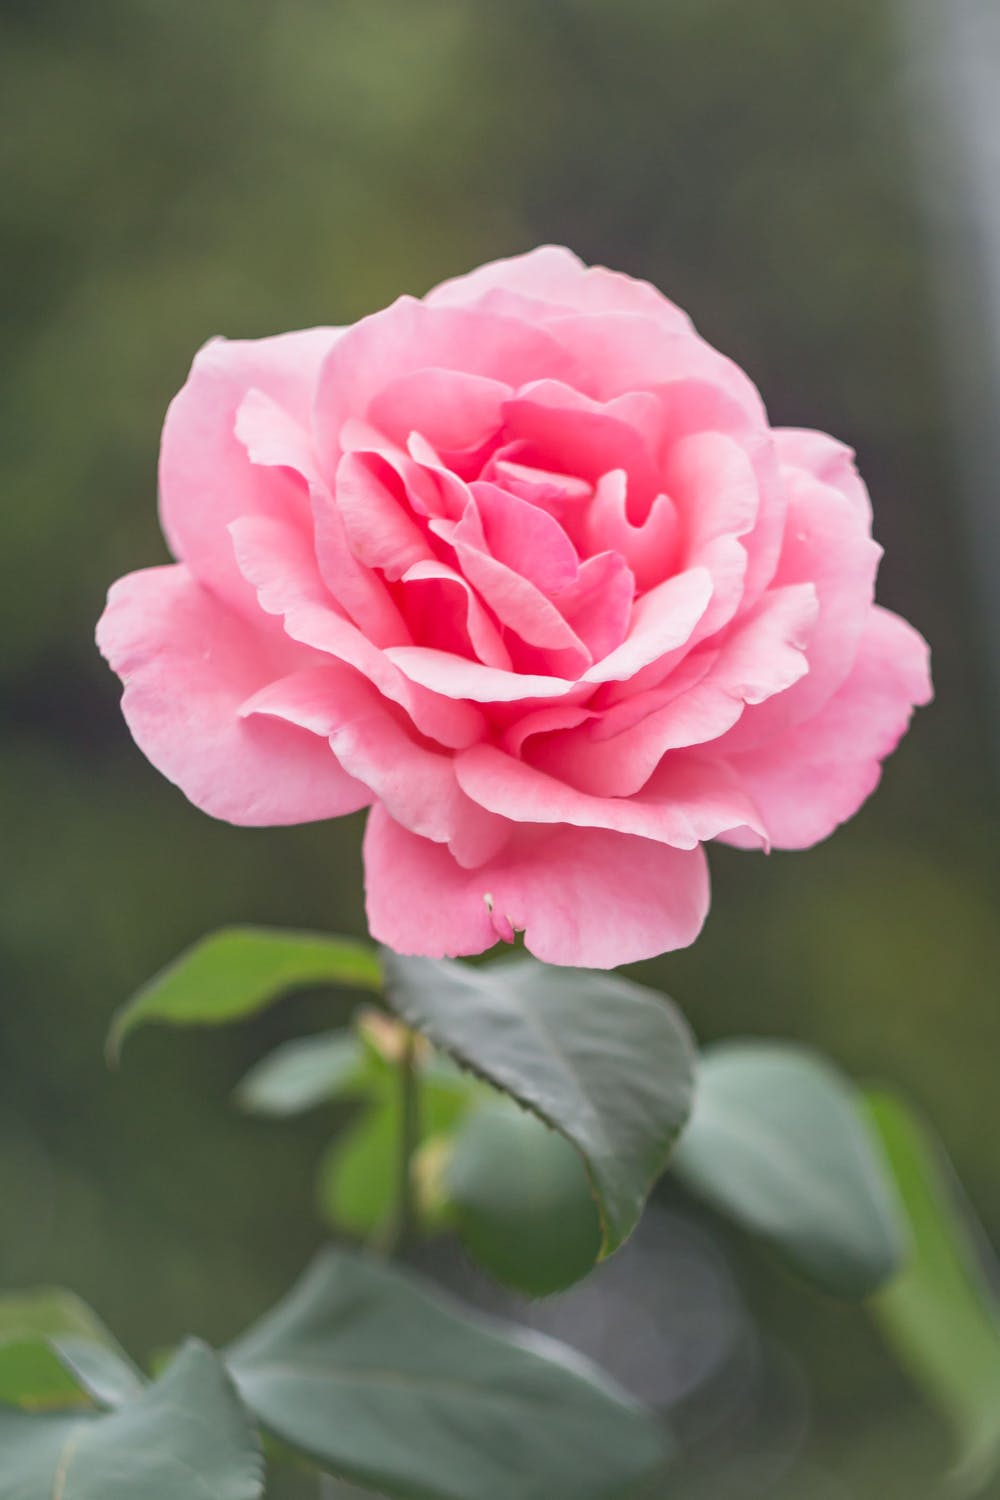 When You're Trying to Save Time and Money, Why Choose Online Flower Delivery Services?